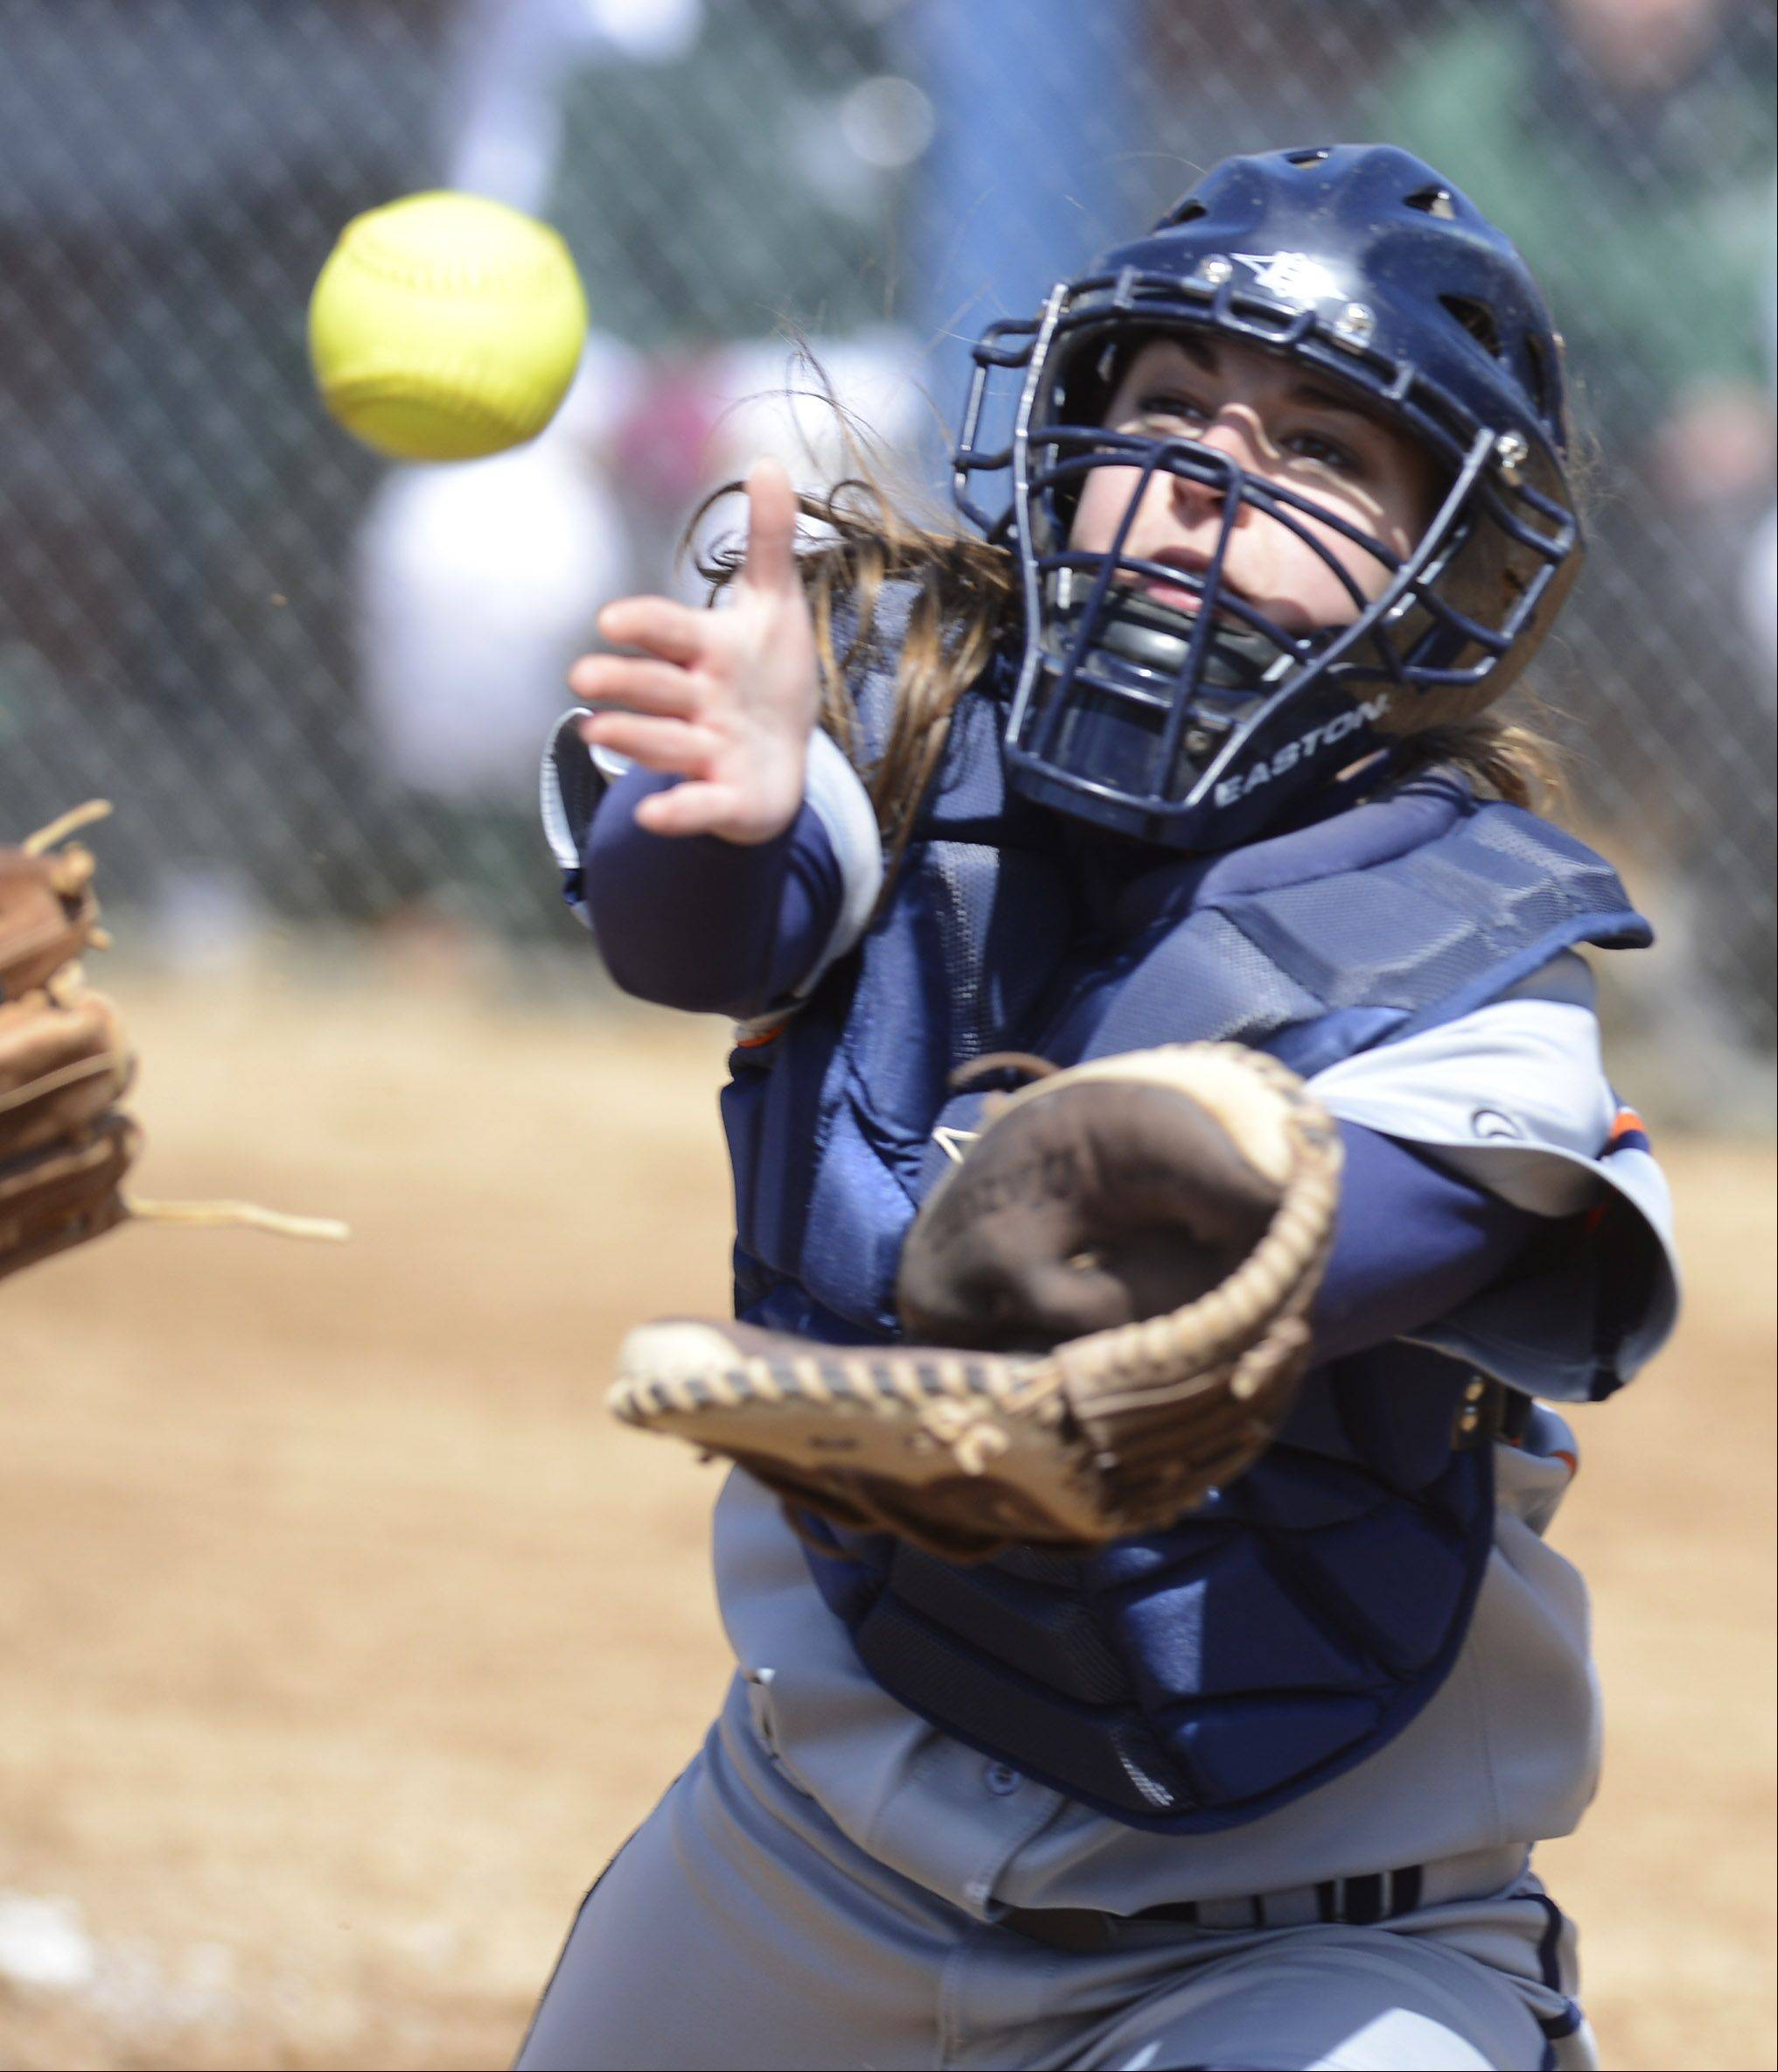 Buffalo Grove's Amanda Salzman closes in on the ball during Saturday's softball game against Elk Grove.